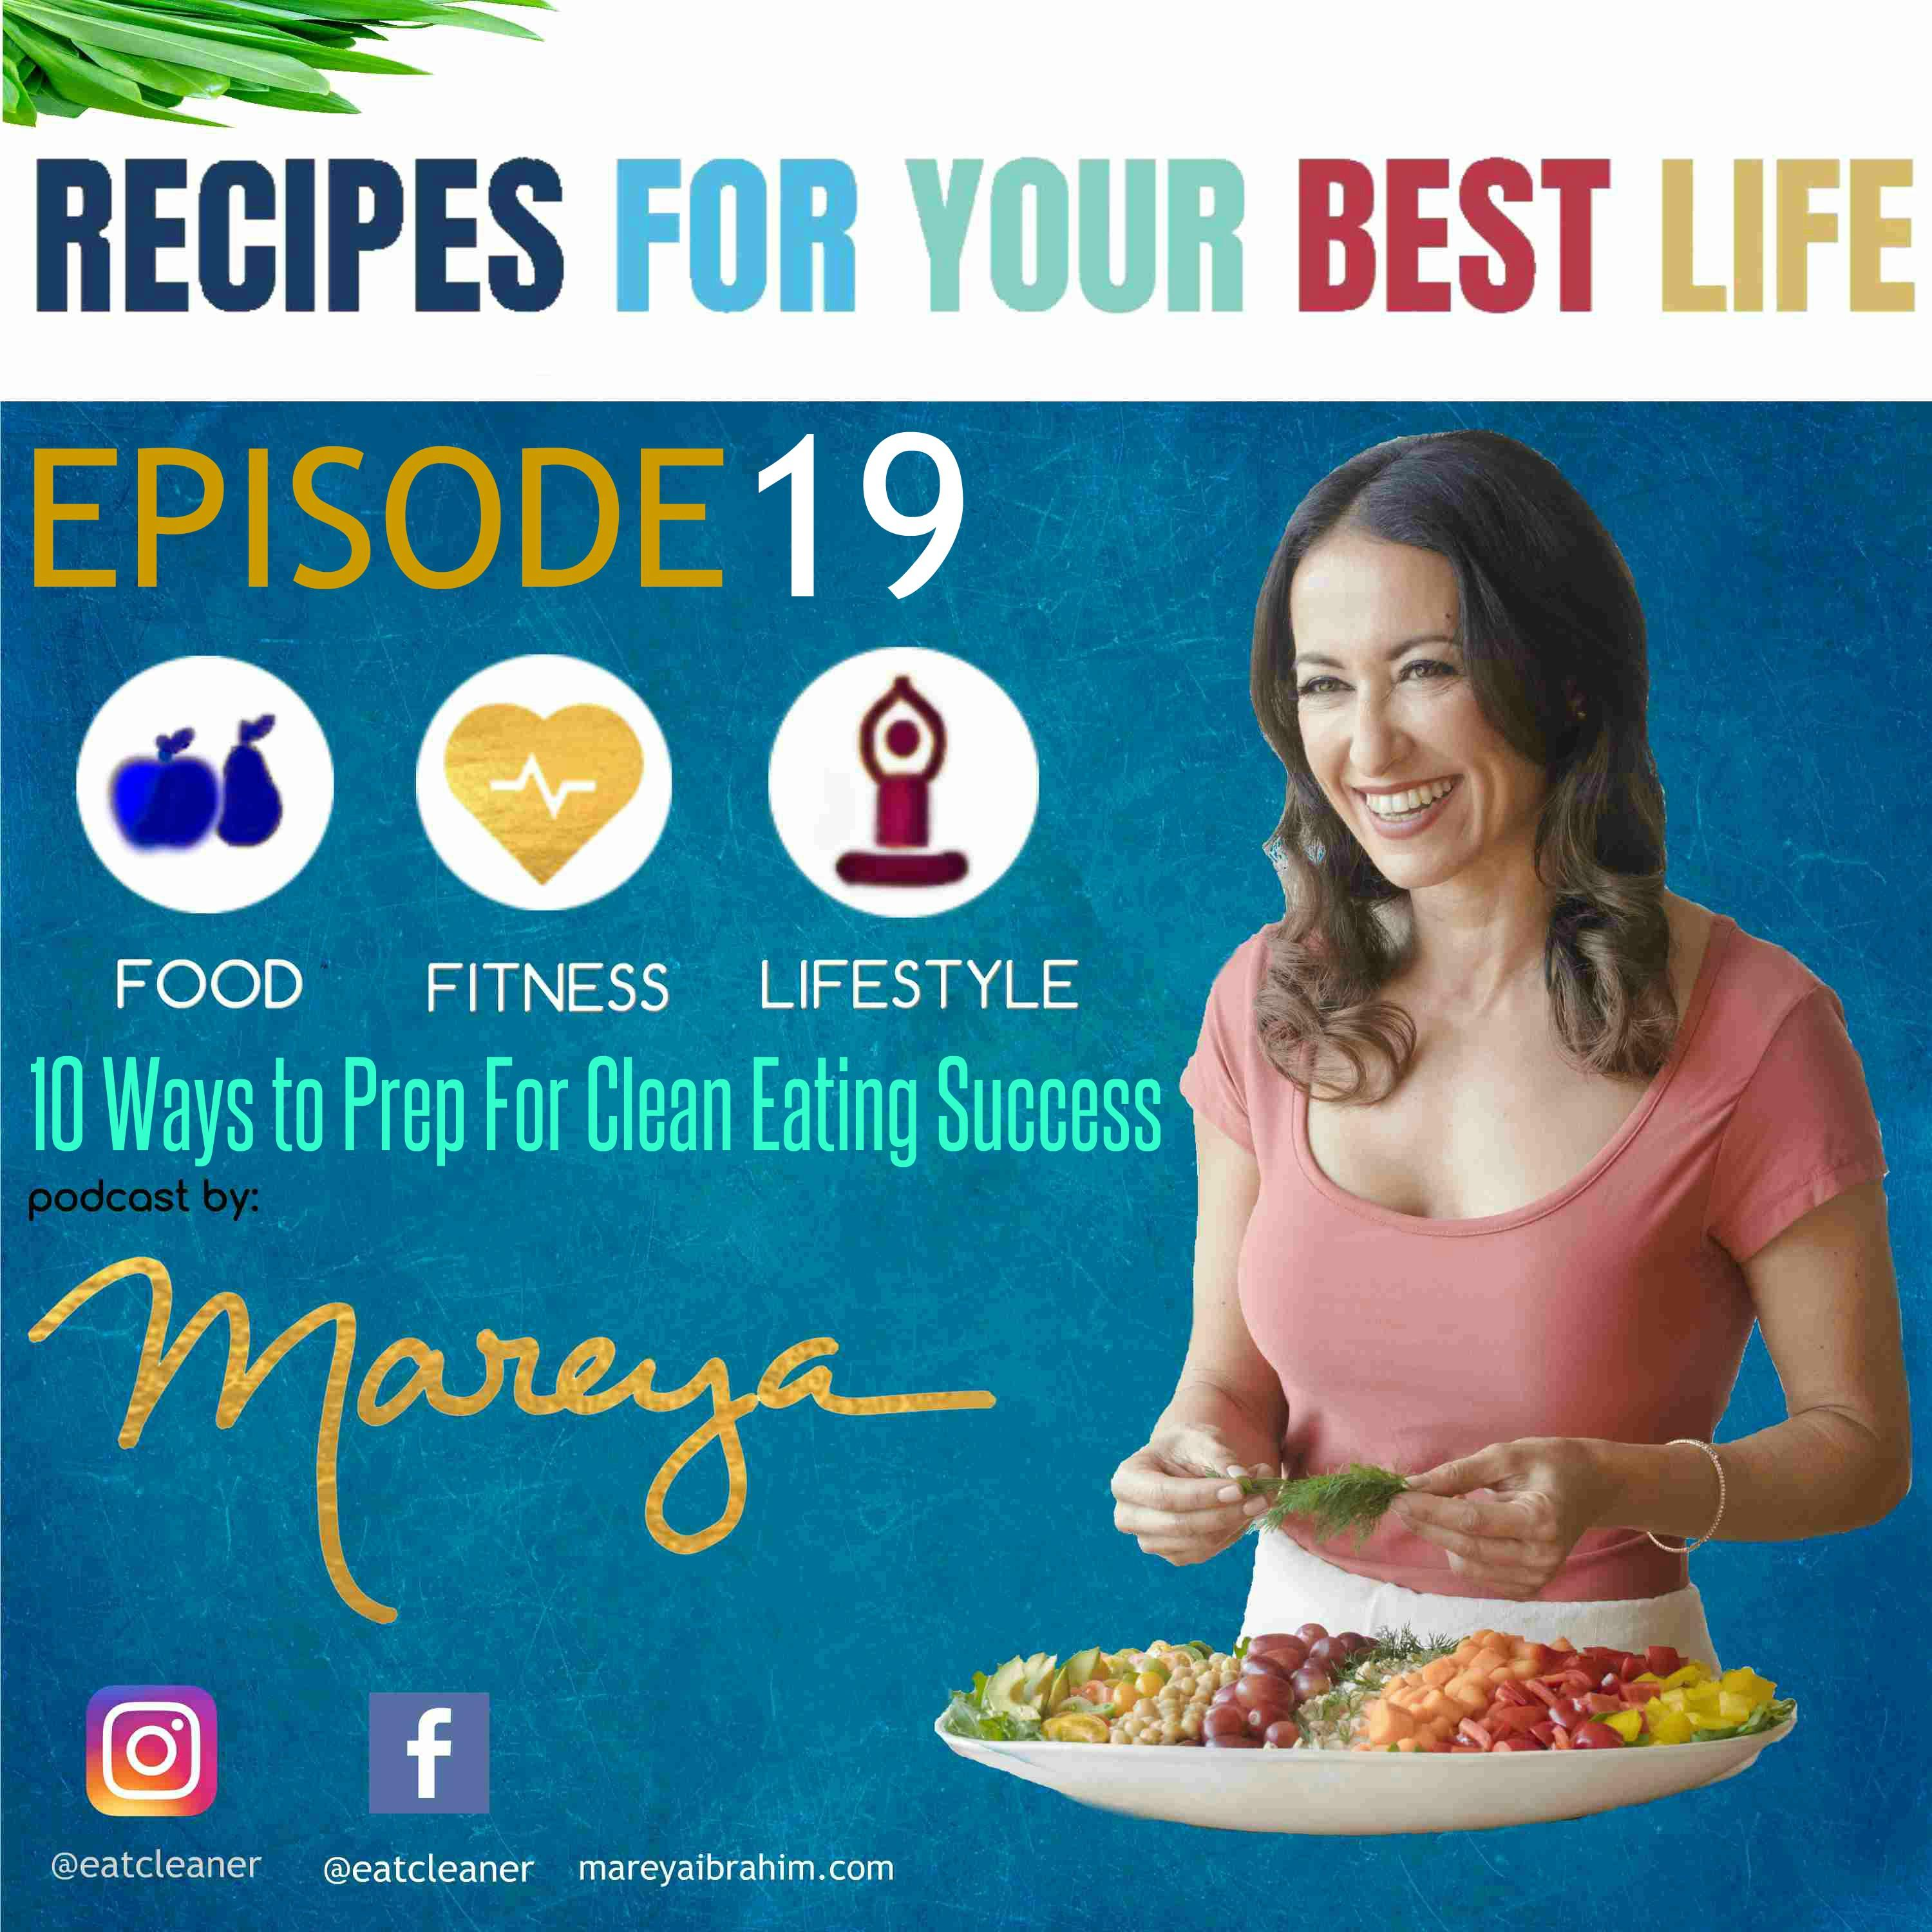 EP 19 - 10 Ways to Prep For Clean Eating Success